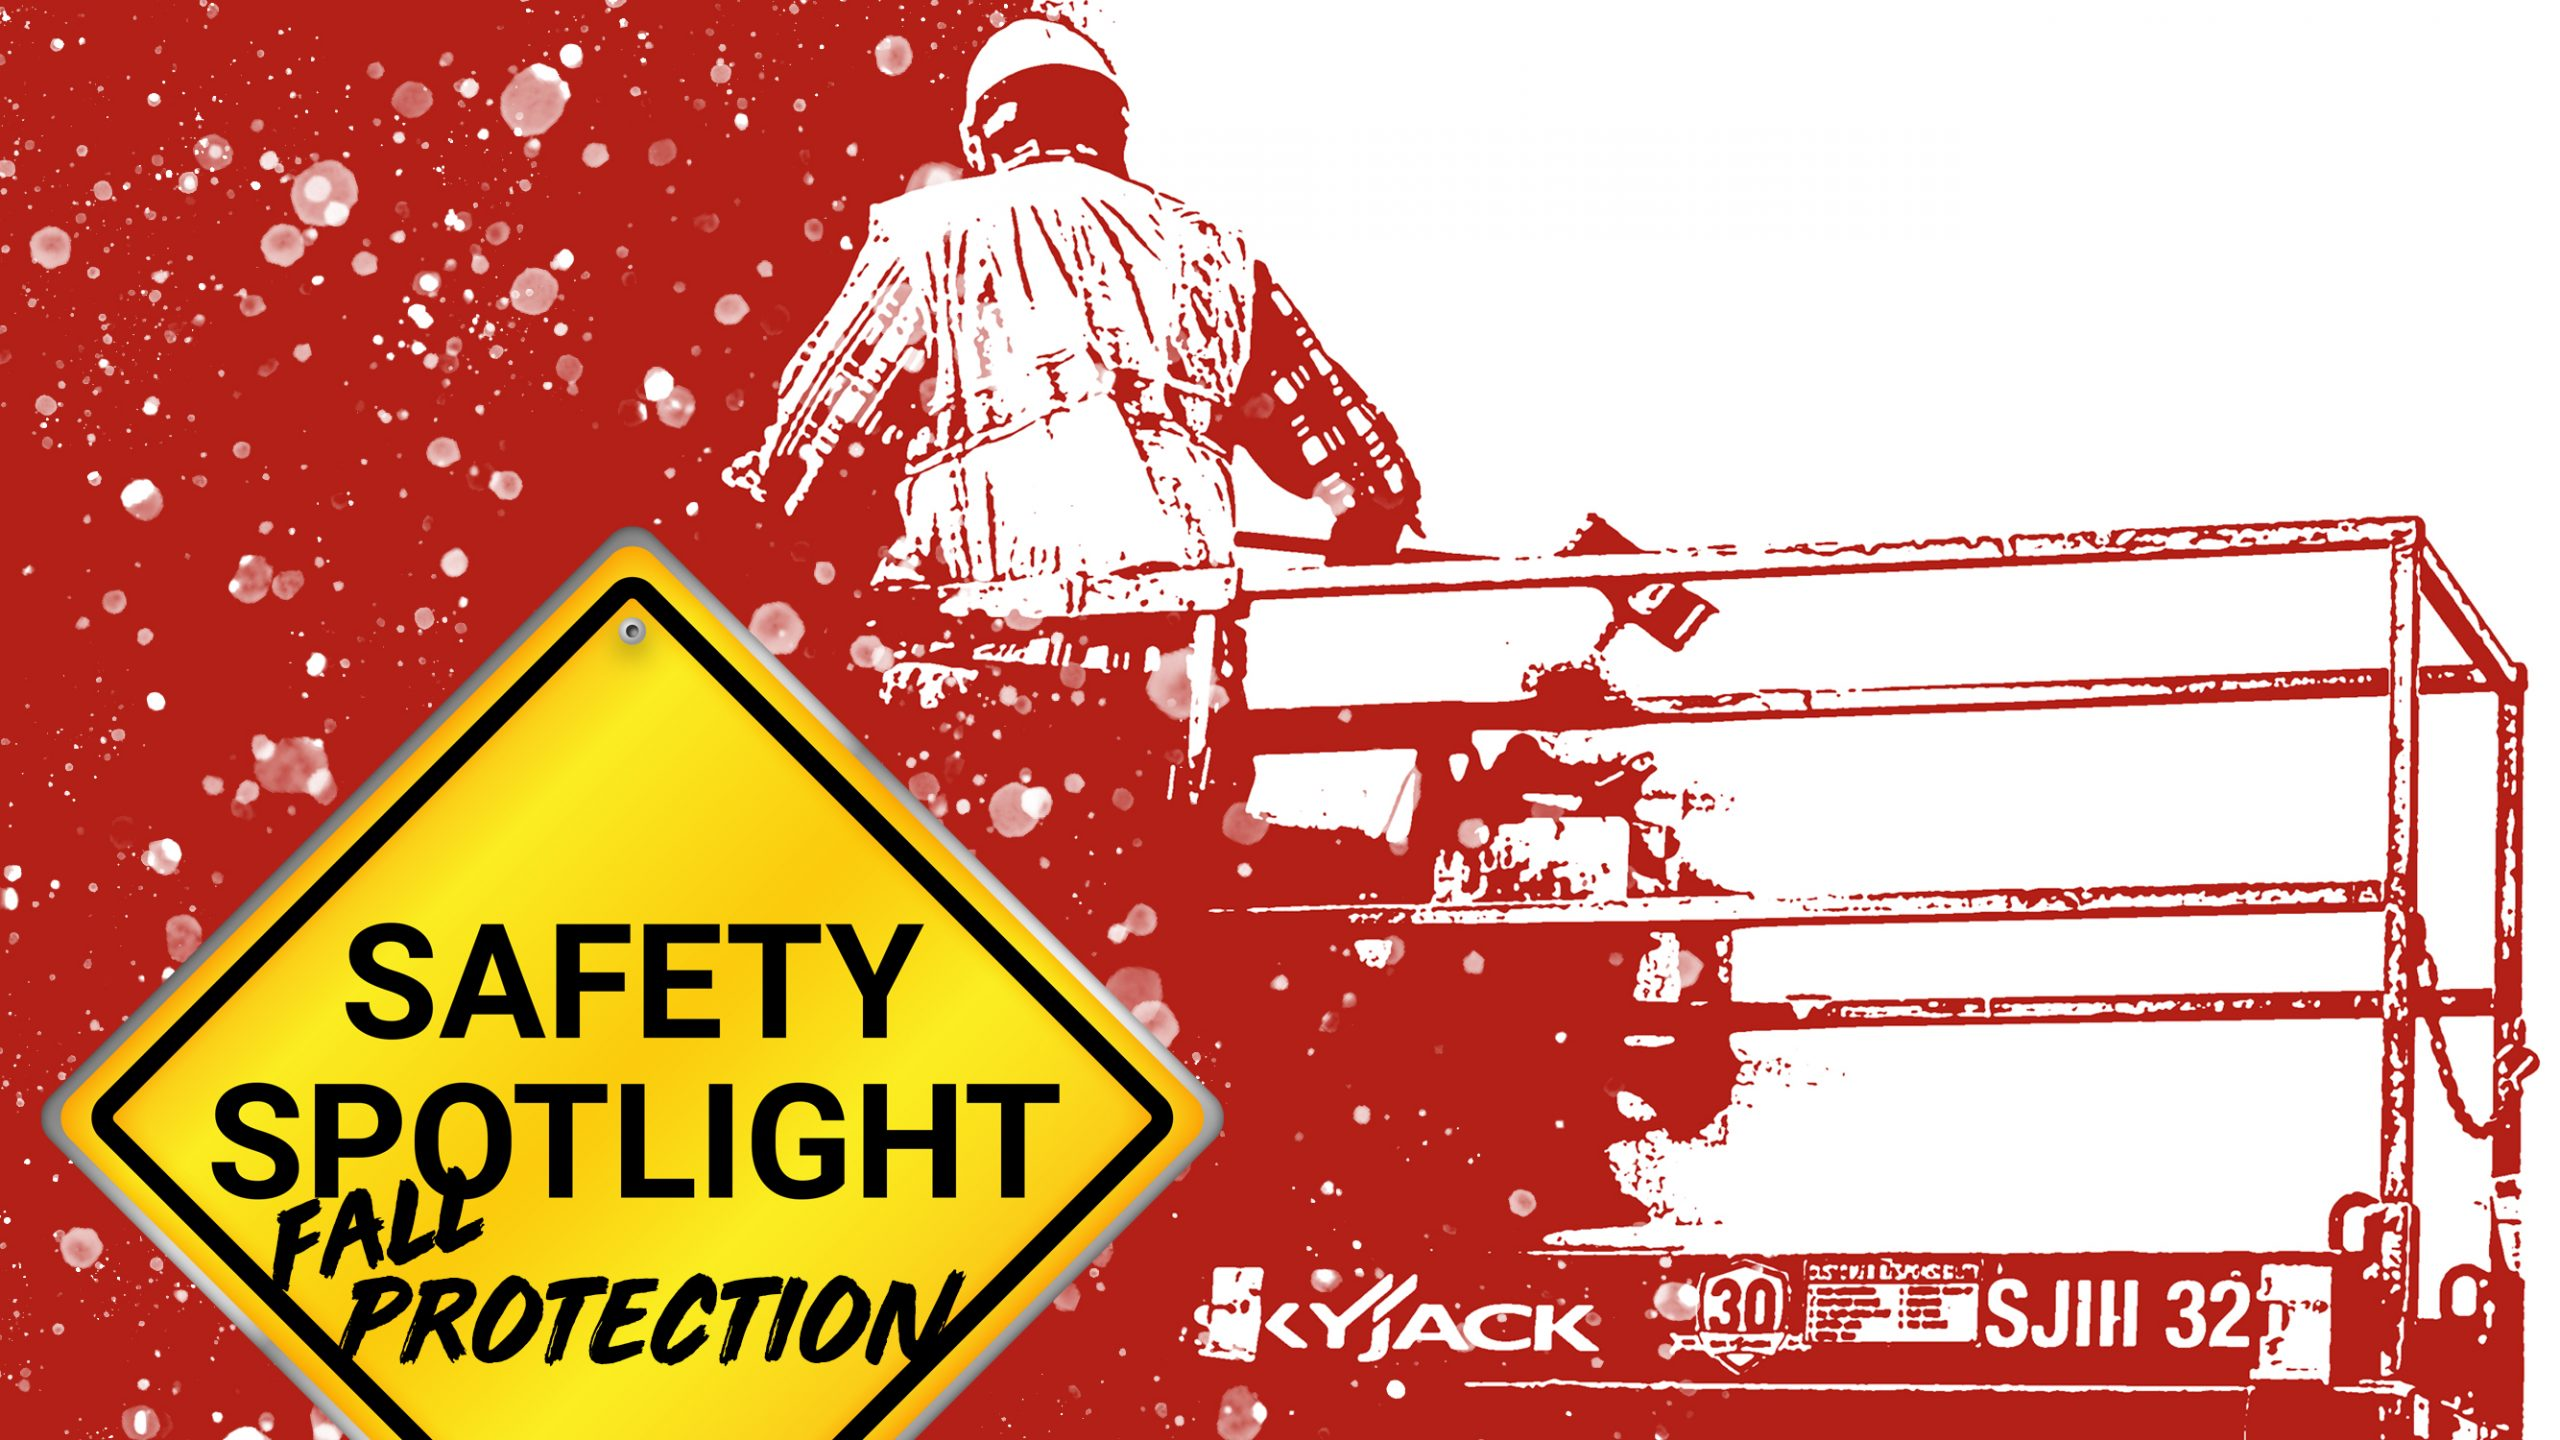 Safety Spotlight: National Safety Stand Down for Fall Protection